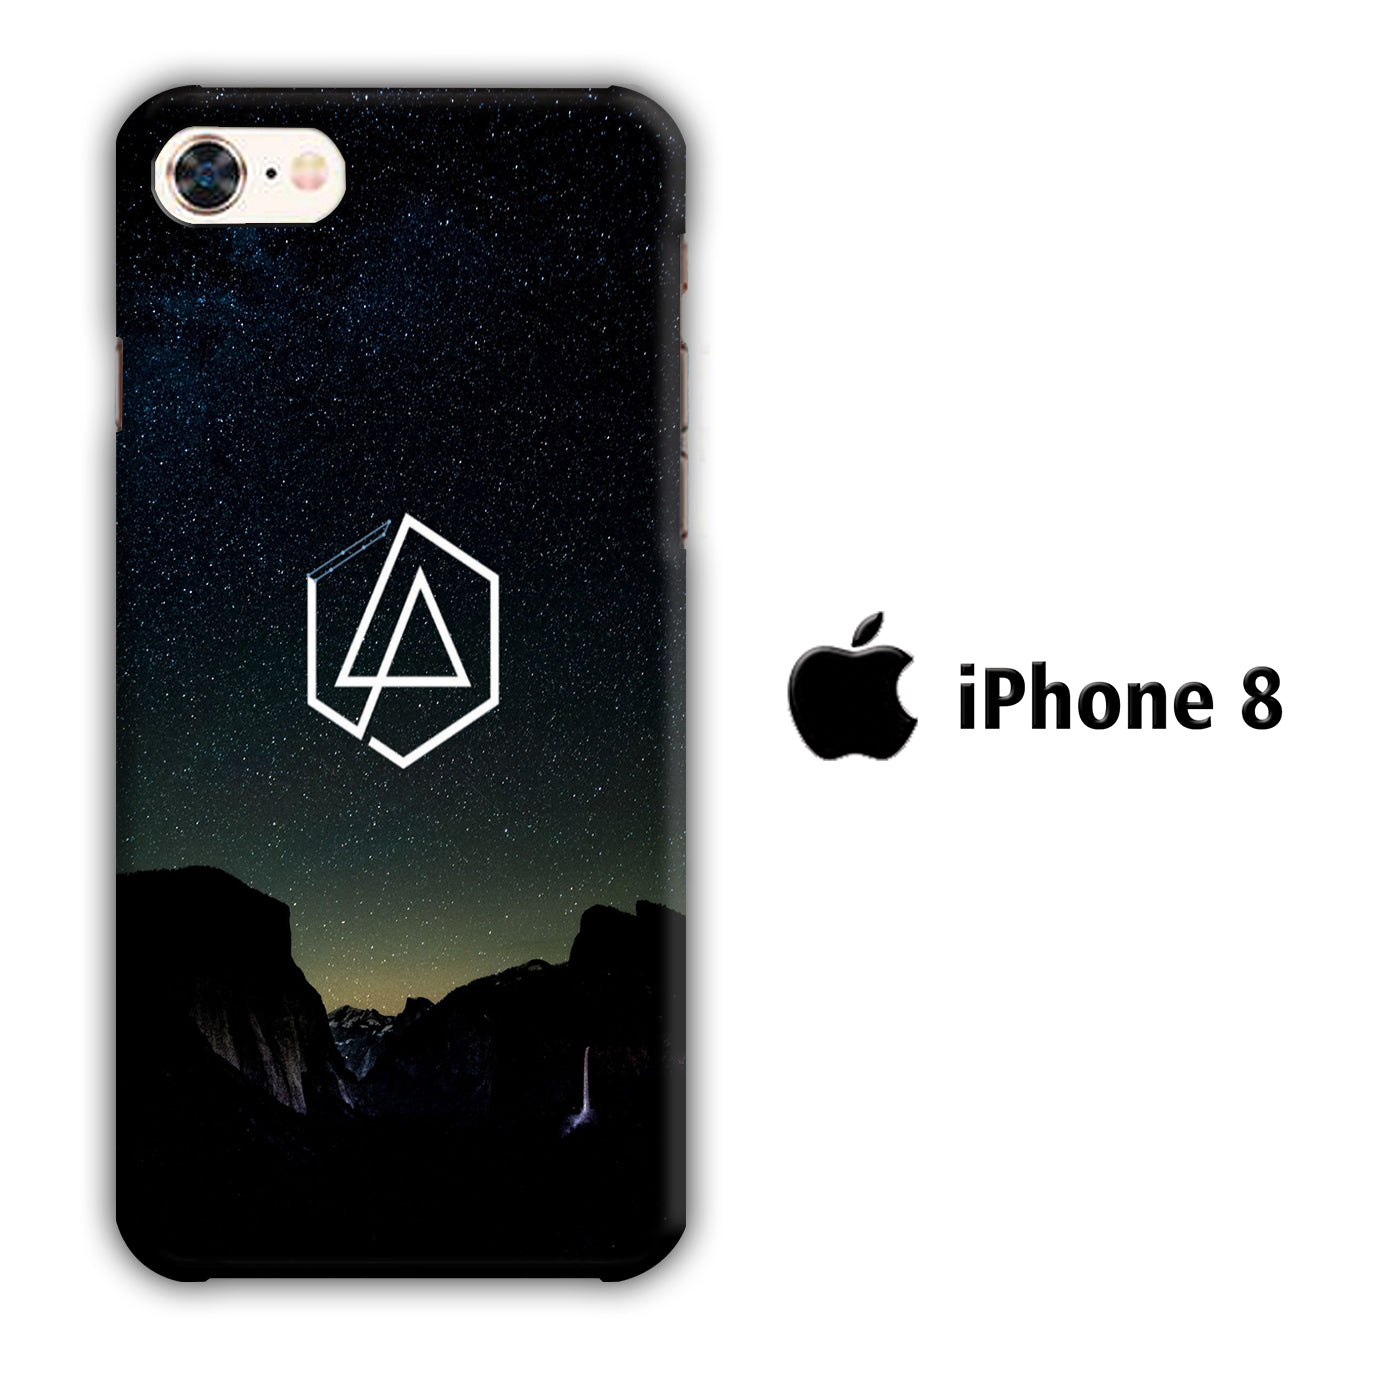 Linkin Park LP 006 iPhone 8 3D Case